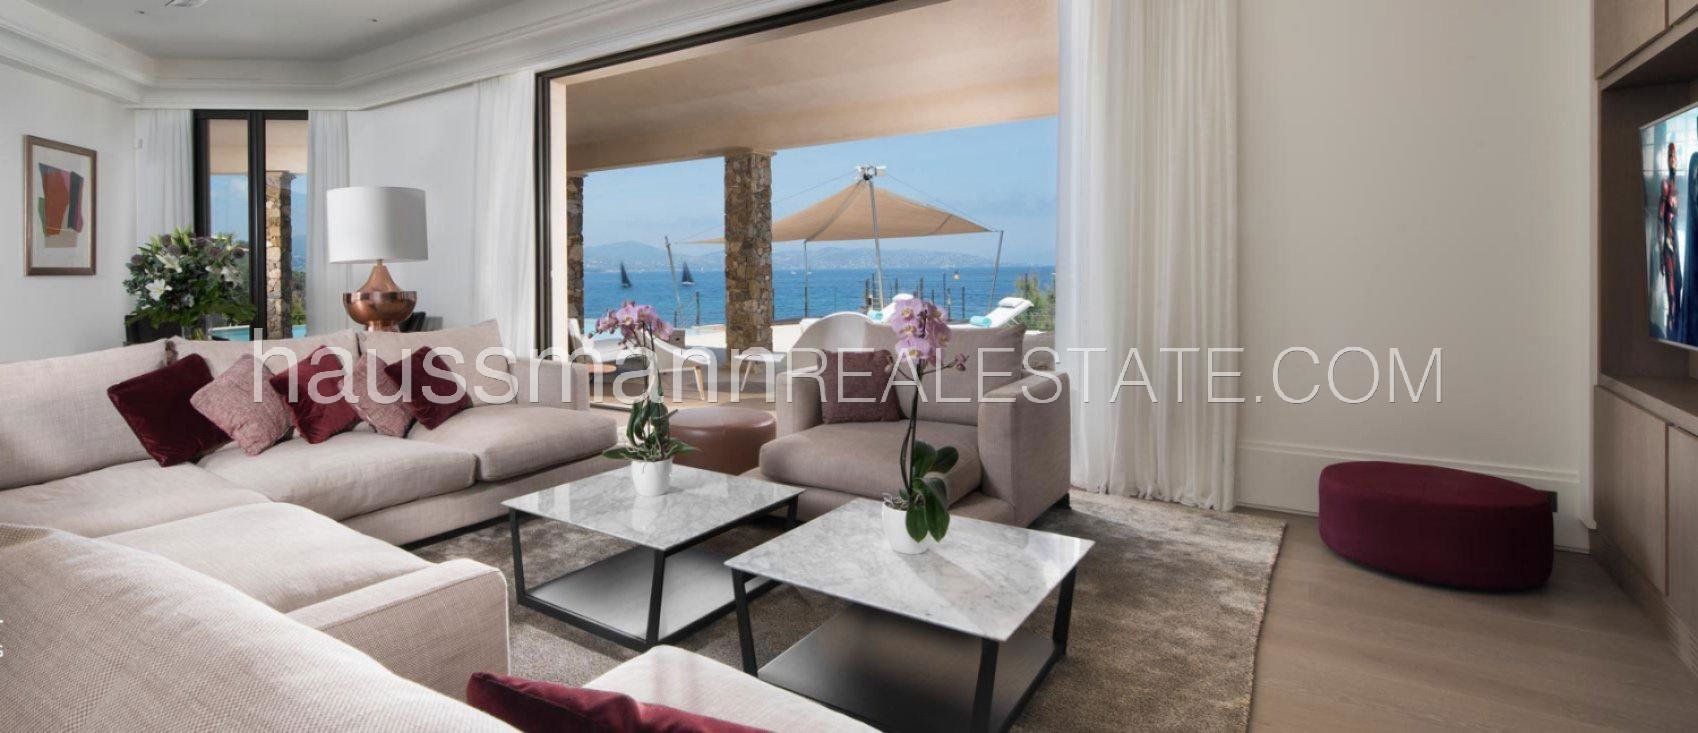 Rental Villa Saint-Tropez Water's Edge Property with hotel services included